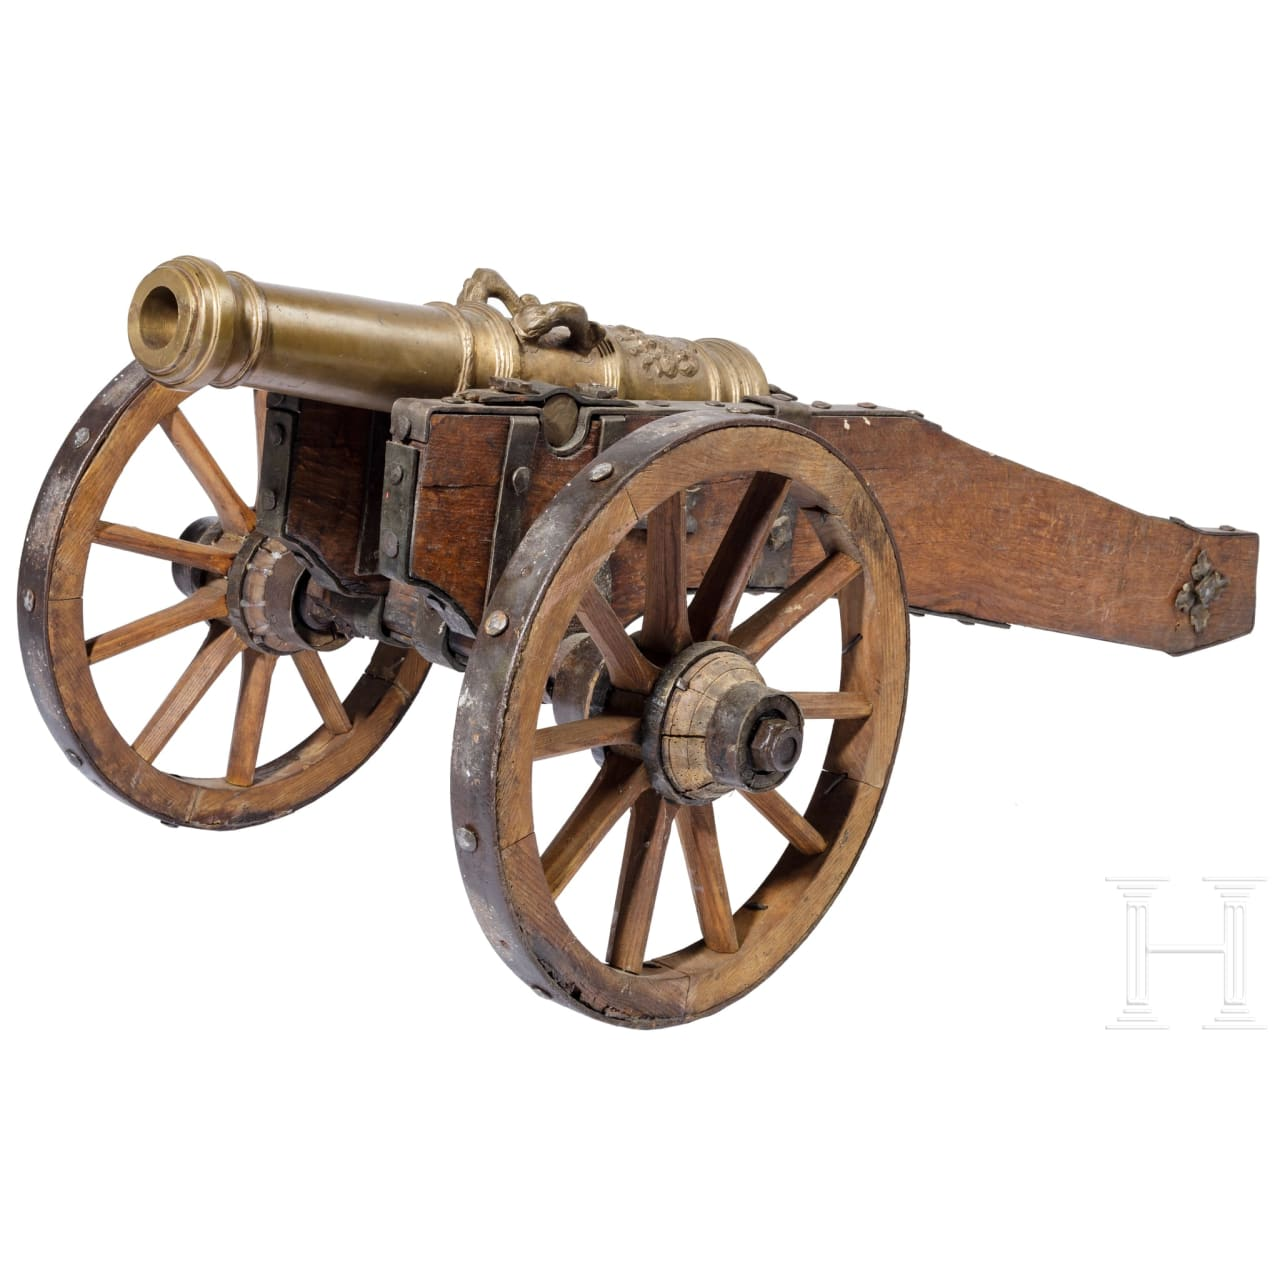 A salute cannon, reproduction in the style of the 17th century